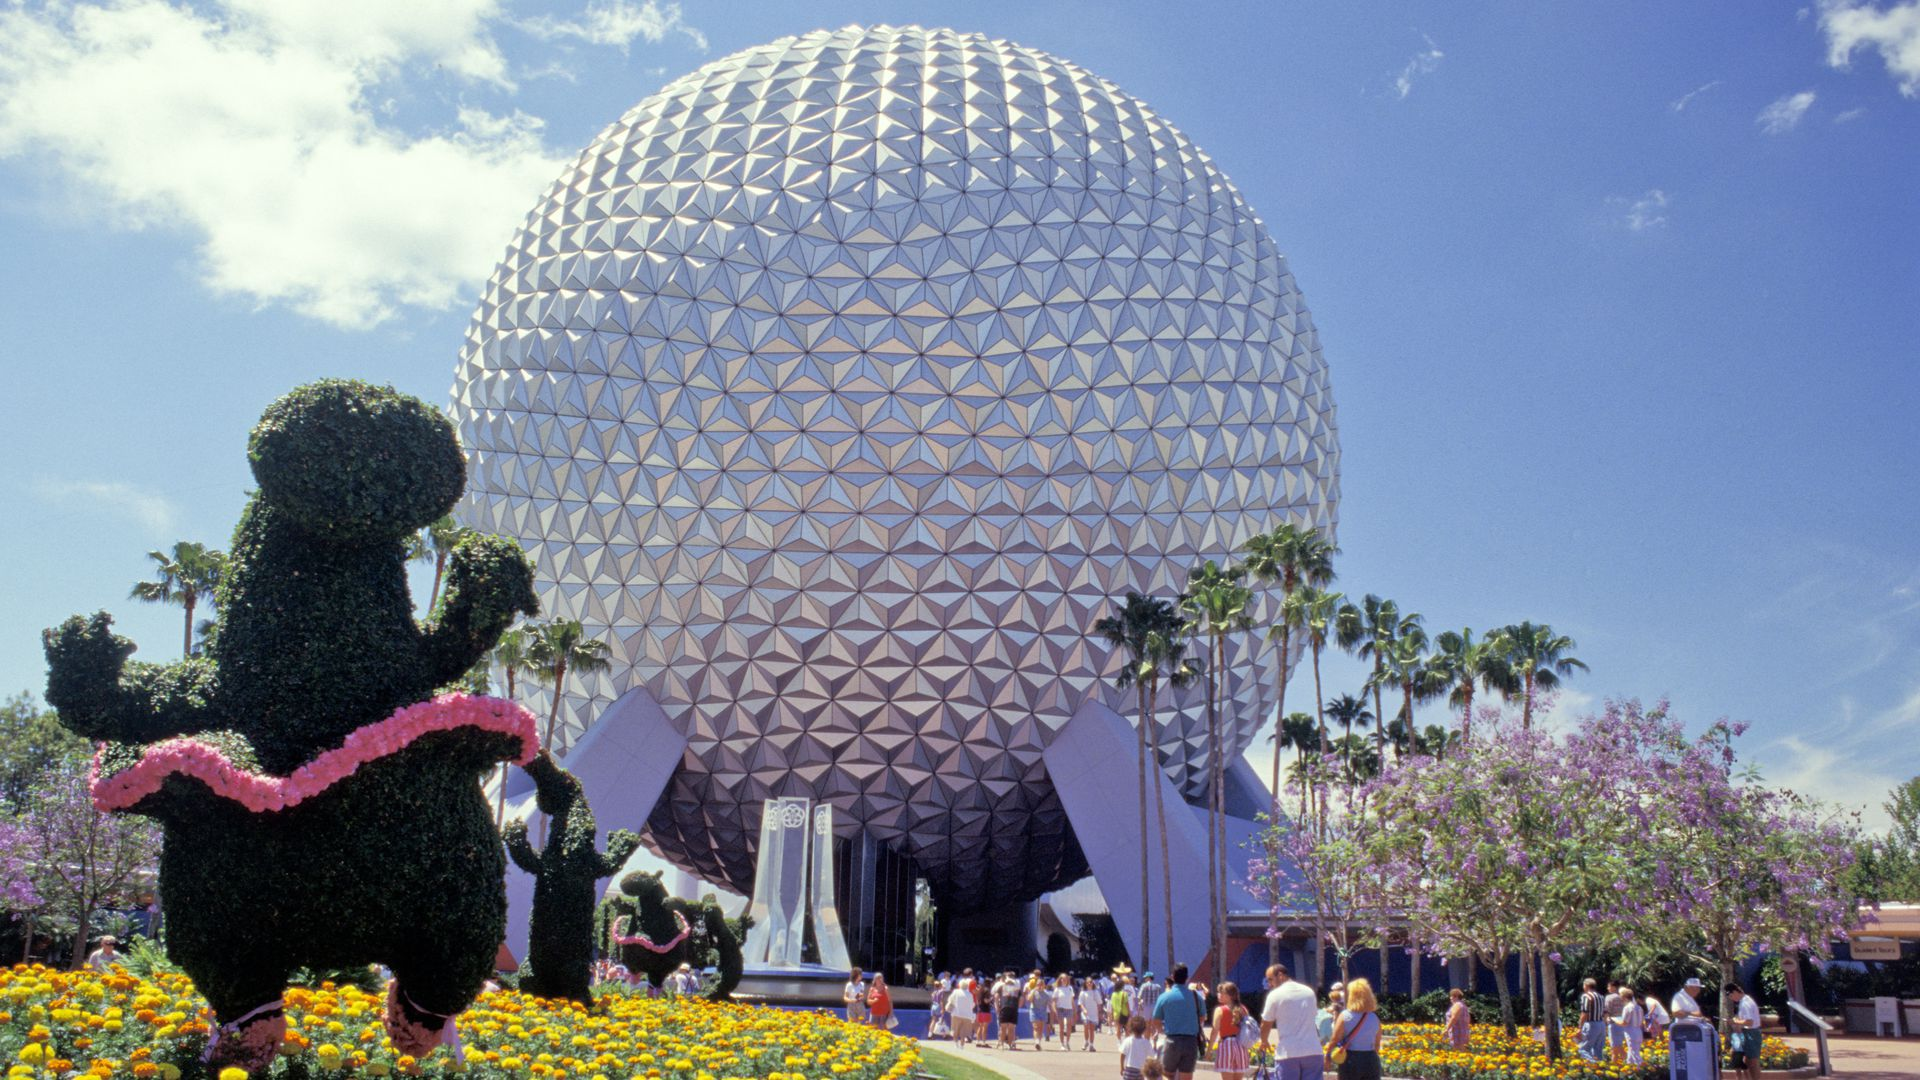 The Epcot Center at Disney World in Orlando, Florida